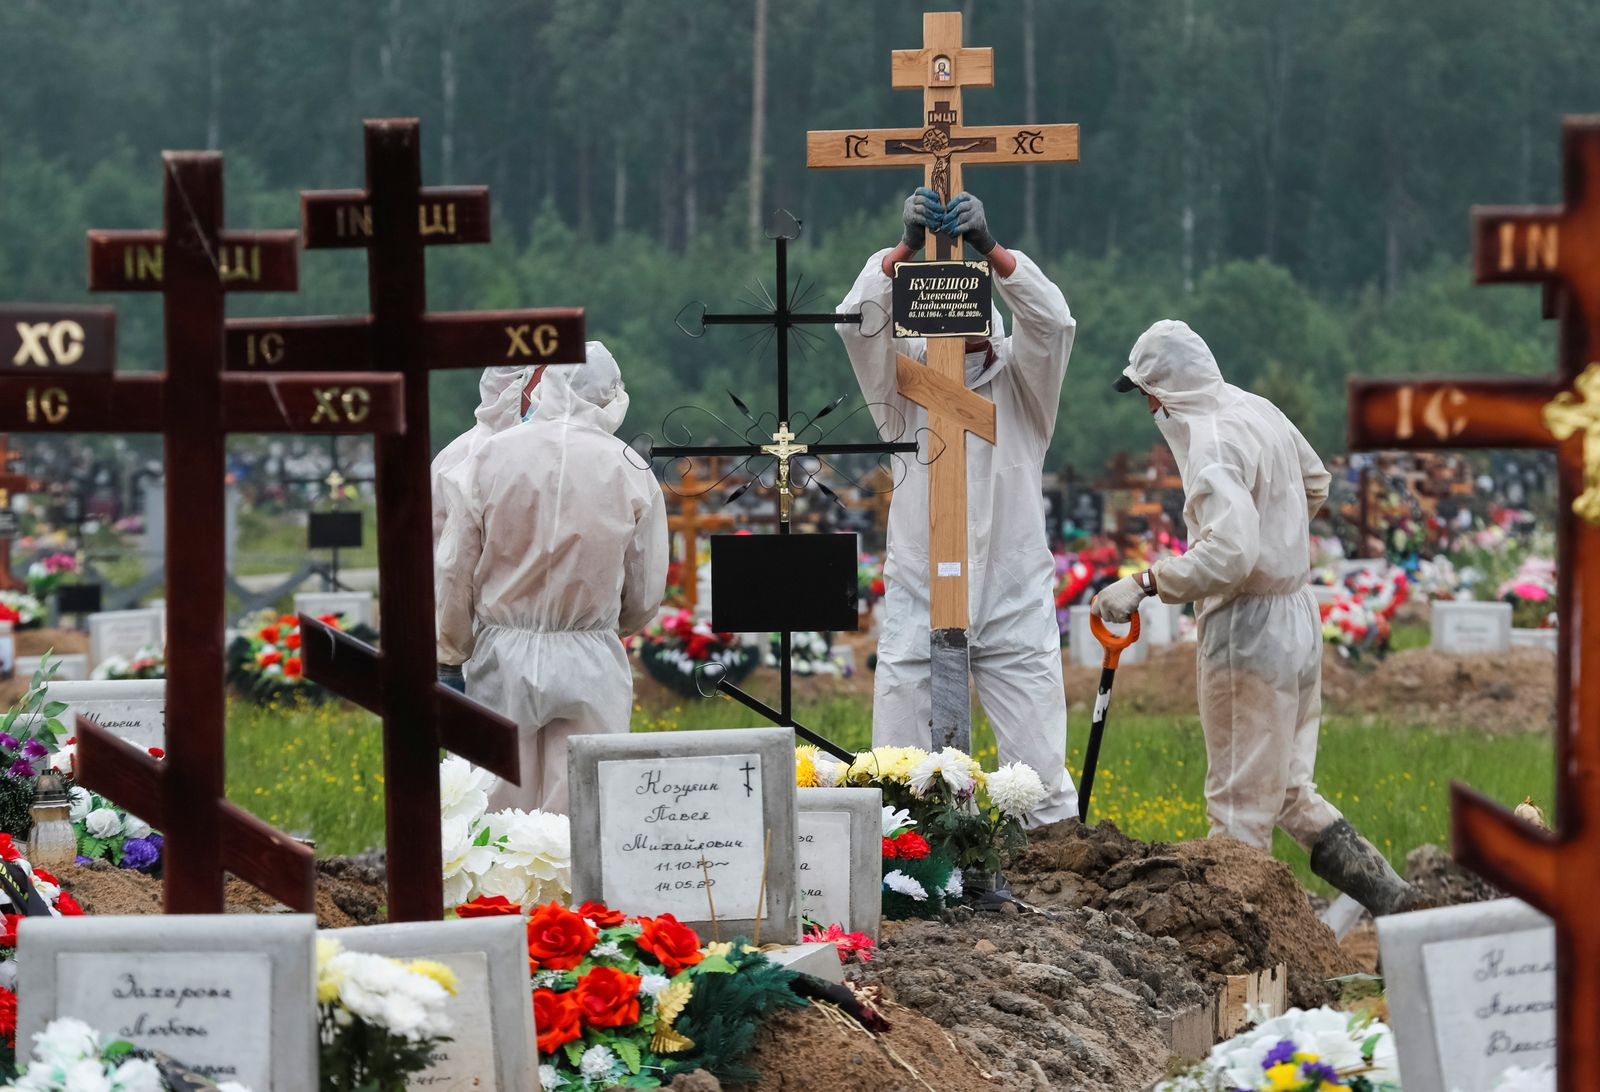 Grave diggers wearing personal protective equipment (PPE) bury a person, who presumably died of the coronavirus disease (COVID-19) in the special purpose section of a graveyard on the outskirts of Saint Petersburg